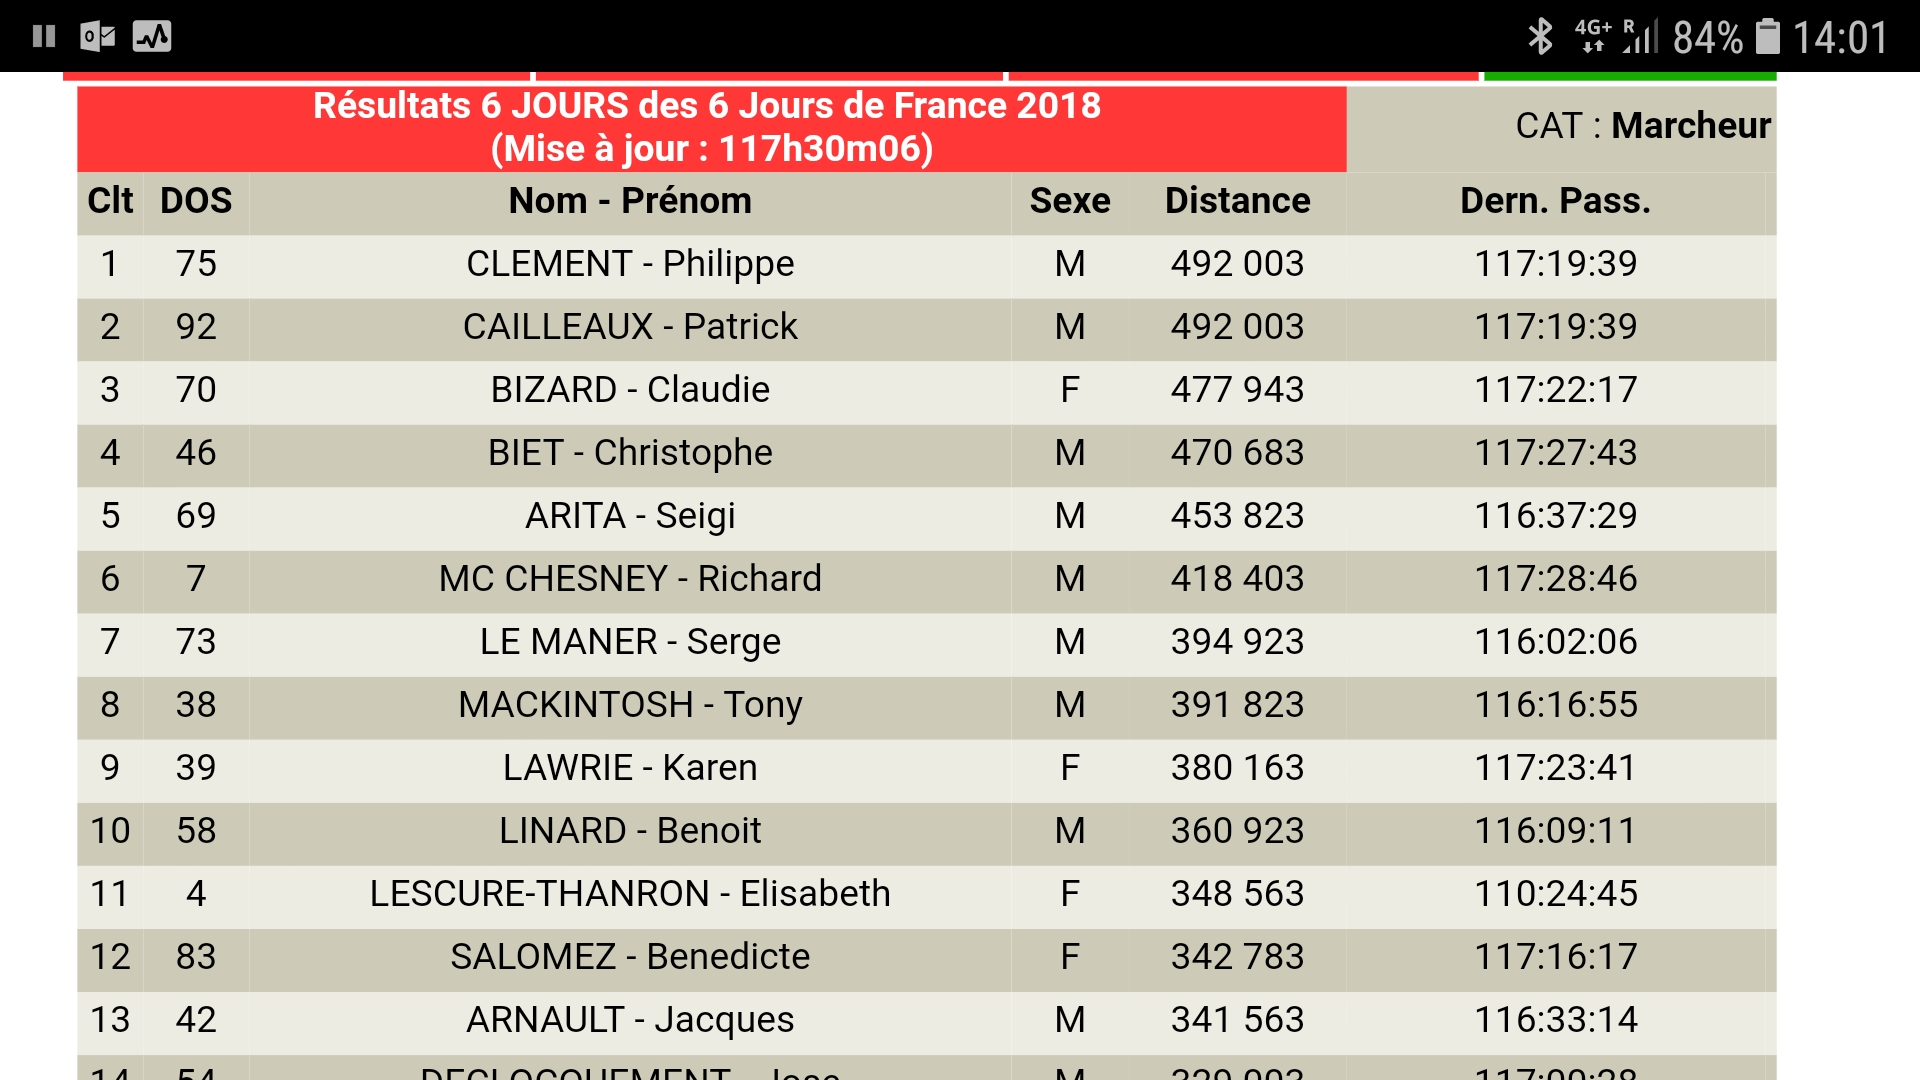 6 jours de france live results at 120 hours